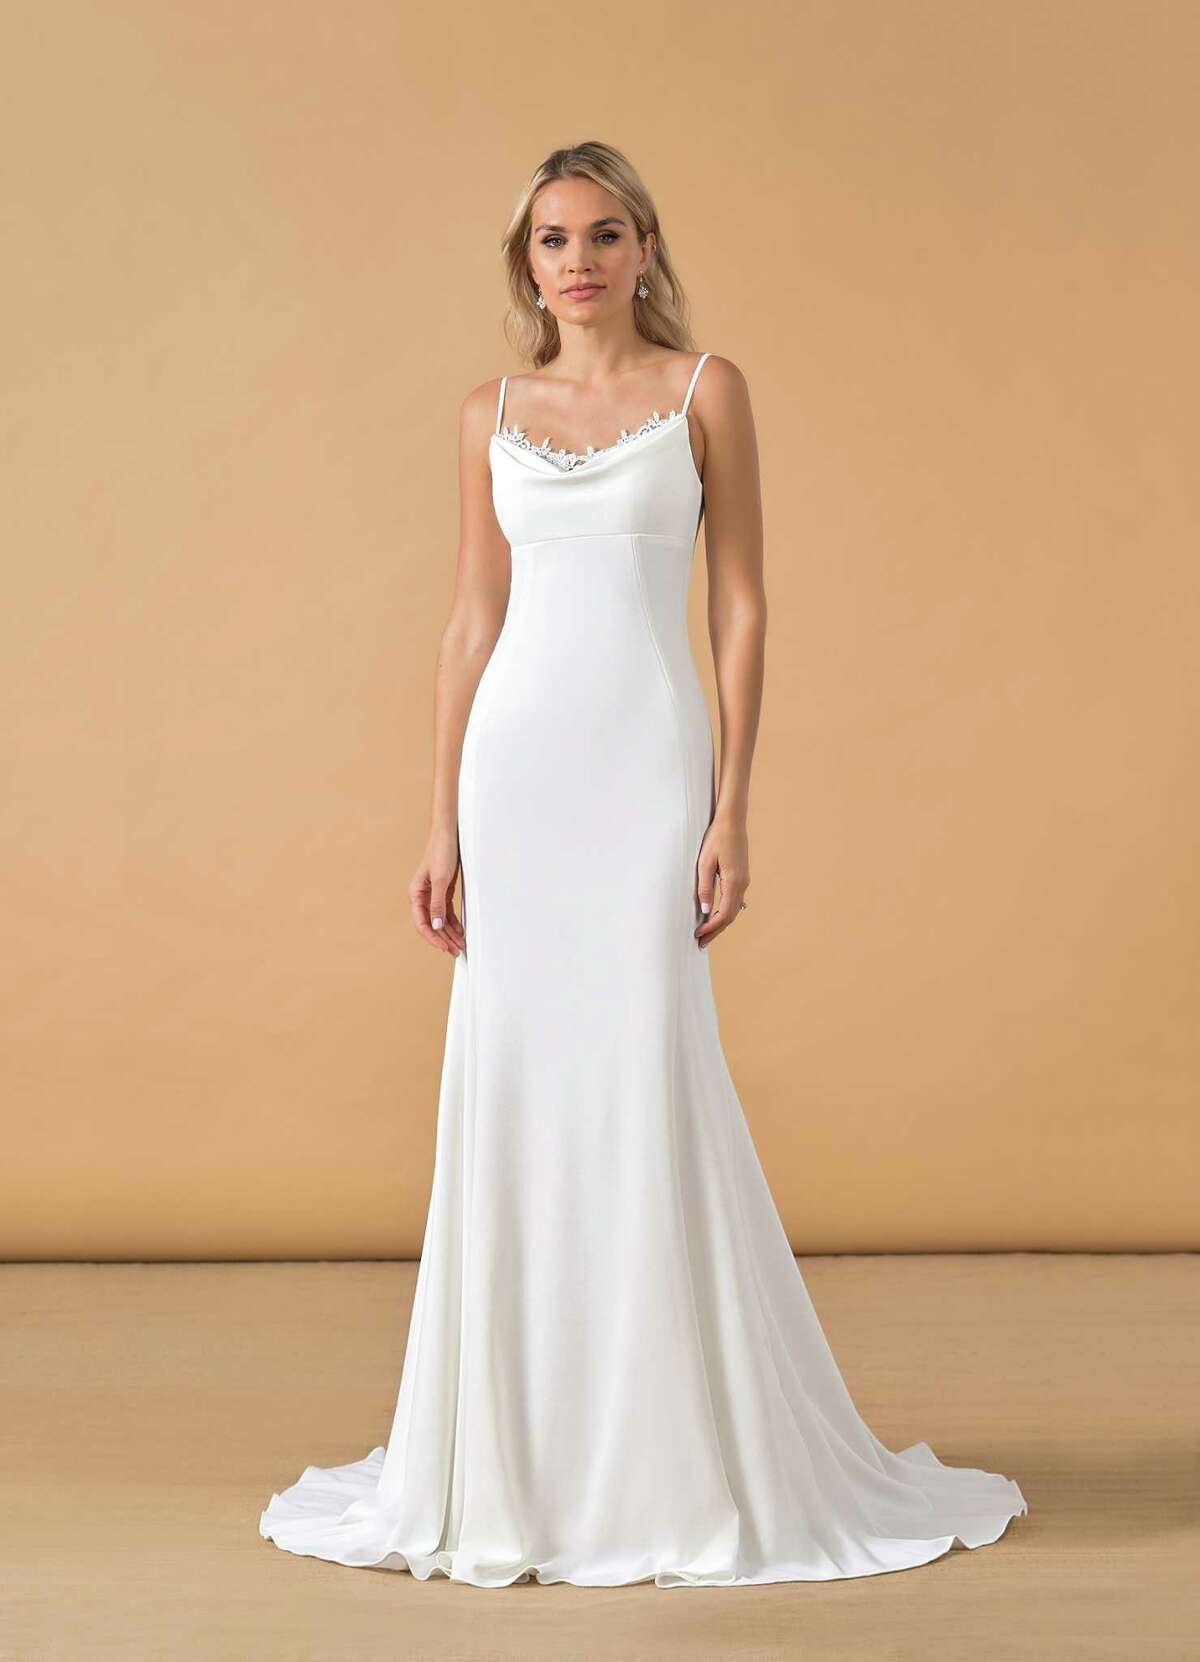 Brides aiming to emulate Ariana Grande's look for their own big day can shop lower-prices similar styles by Azazie for options around $200. TheZarrah dress (pictured here) retails for $169.